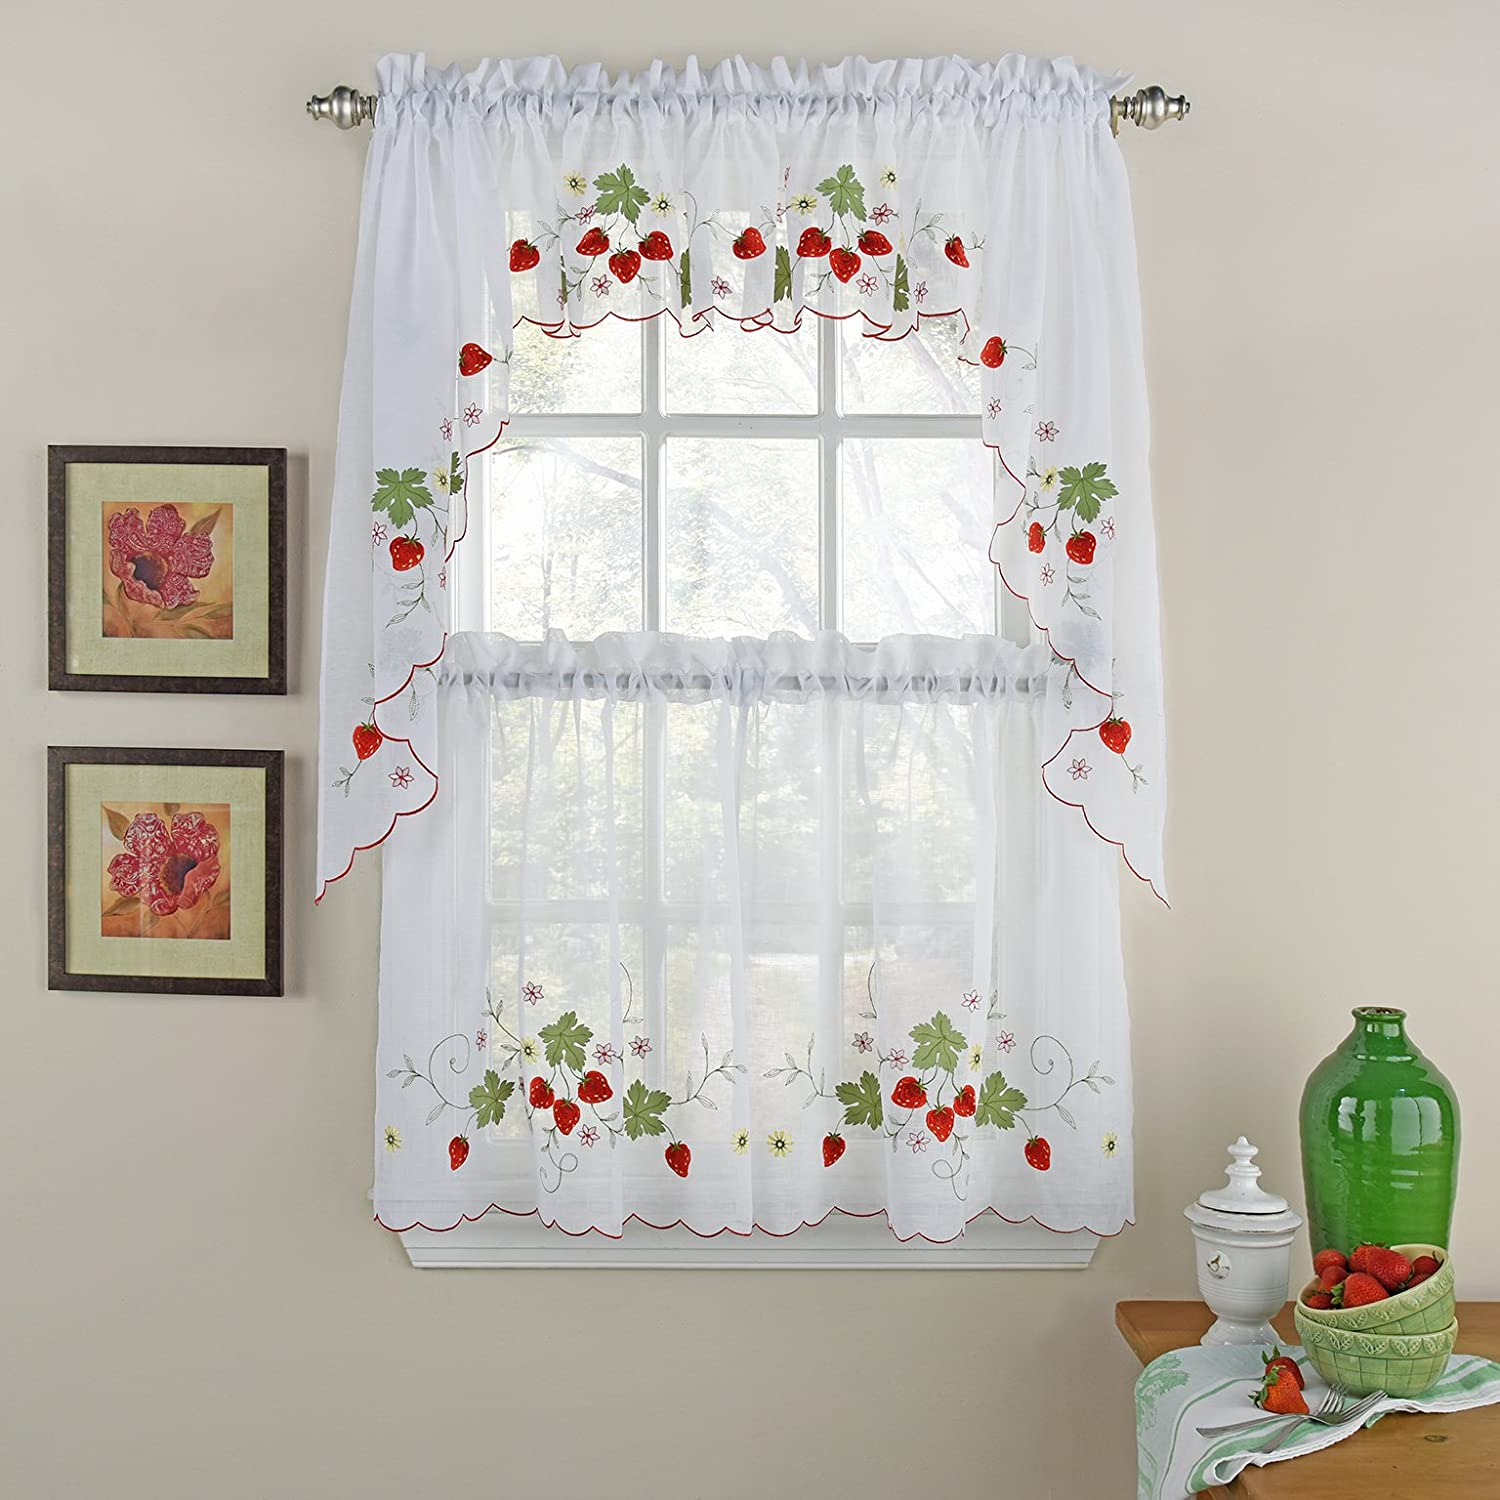 Lorraine Home Fashions 00032-V-00148 RED Strawberries Tailored Window Valance,Red,58 X 12 58 X 12